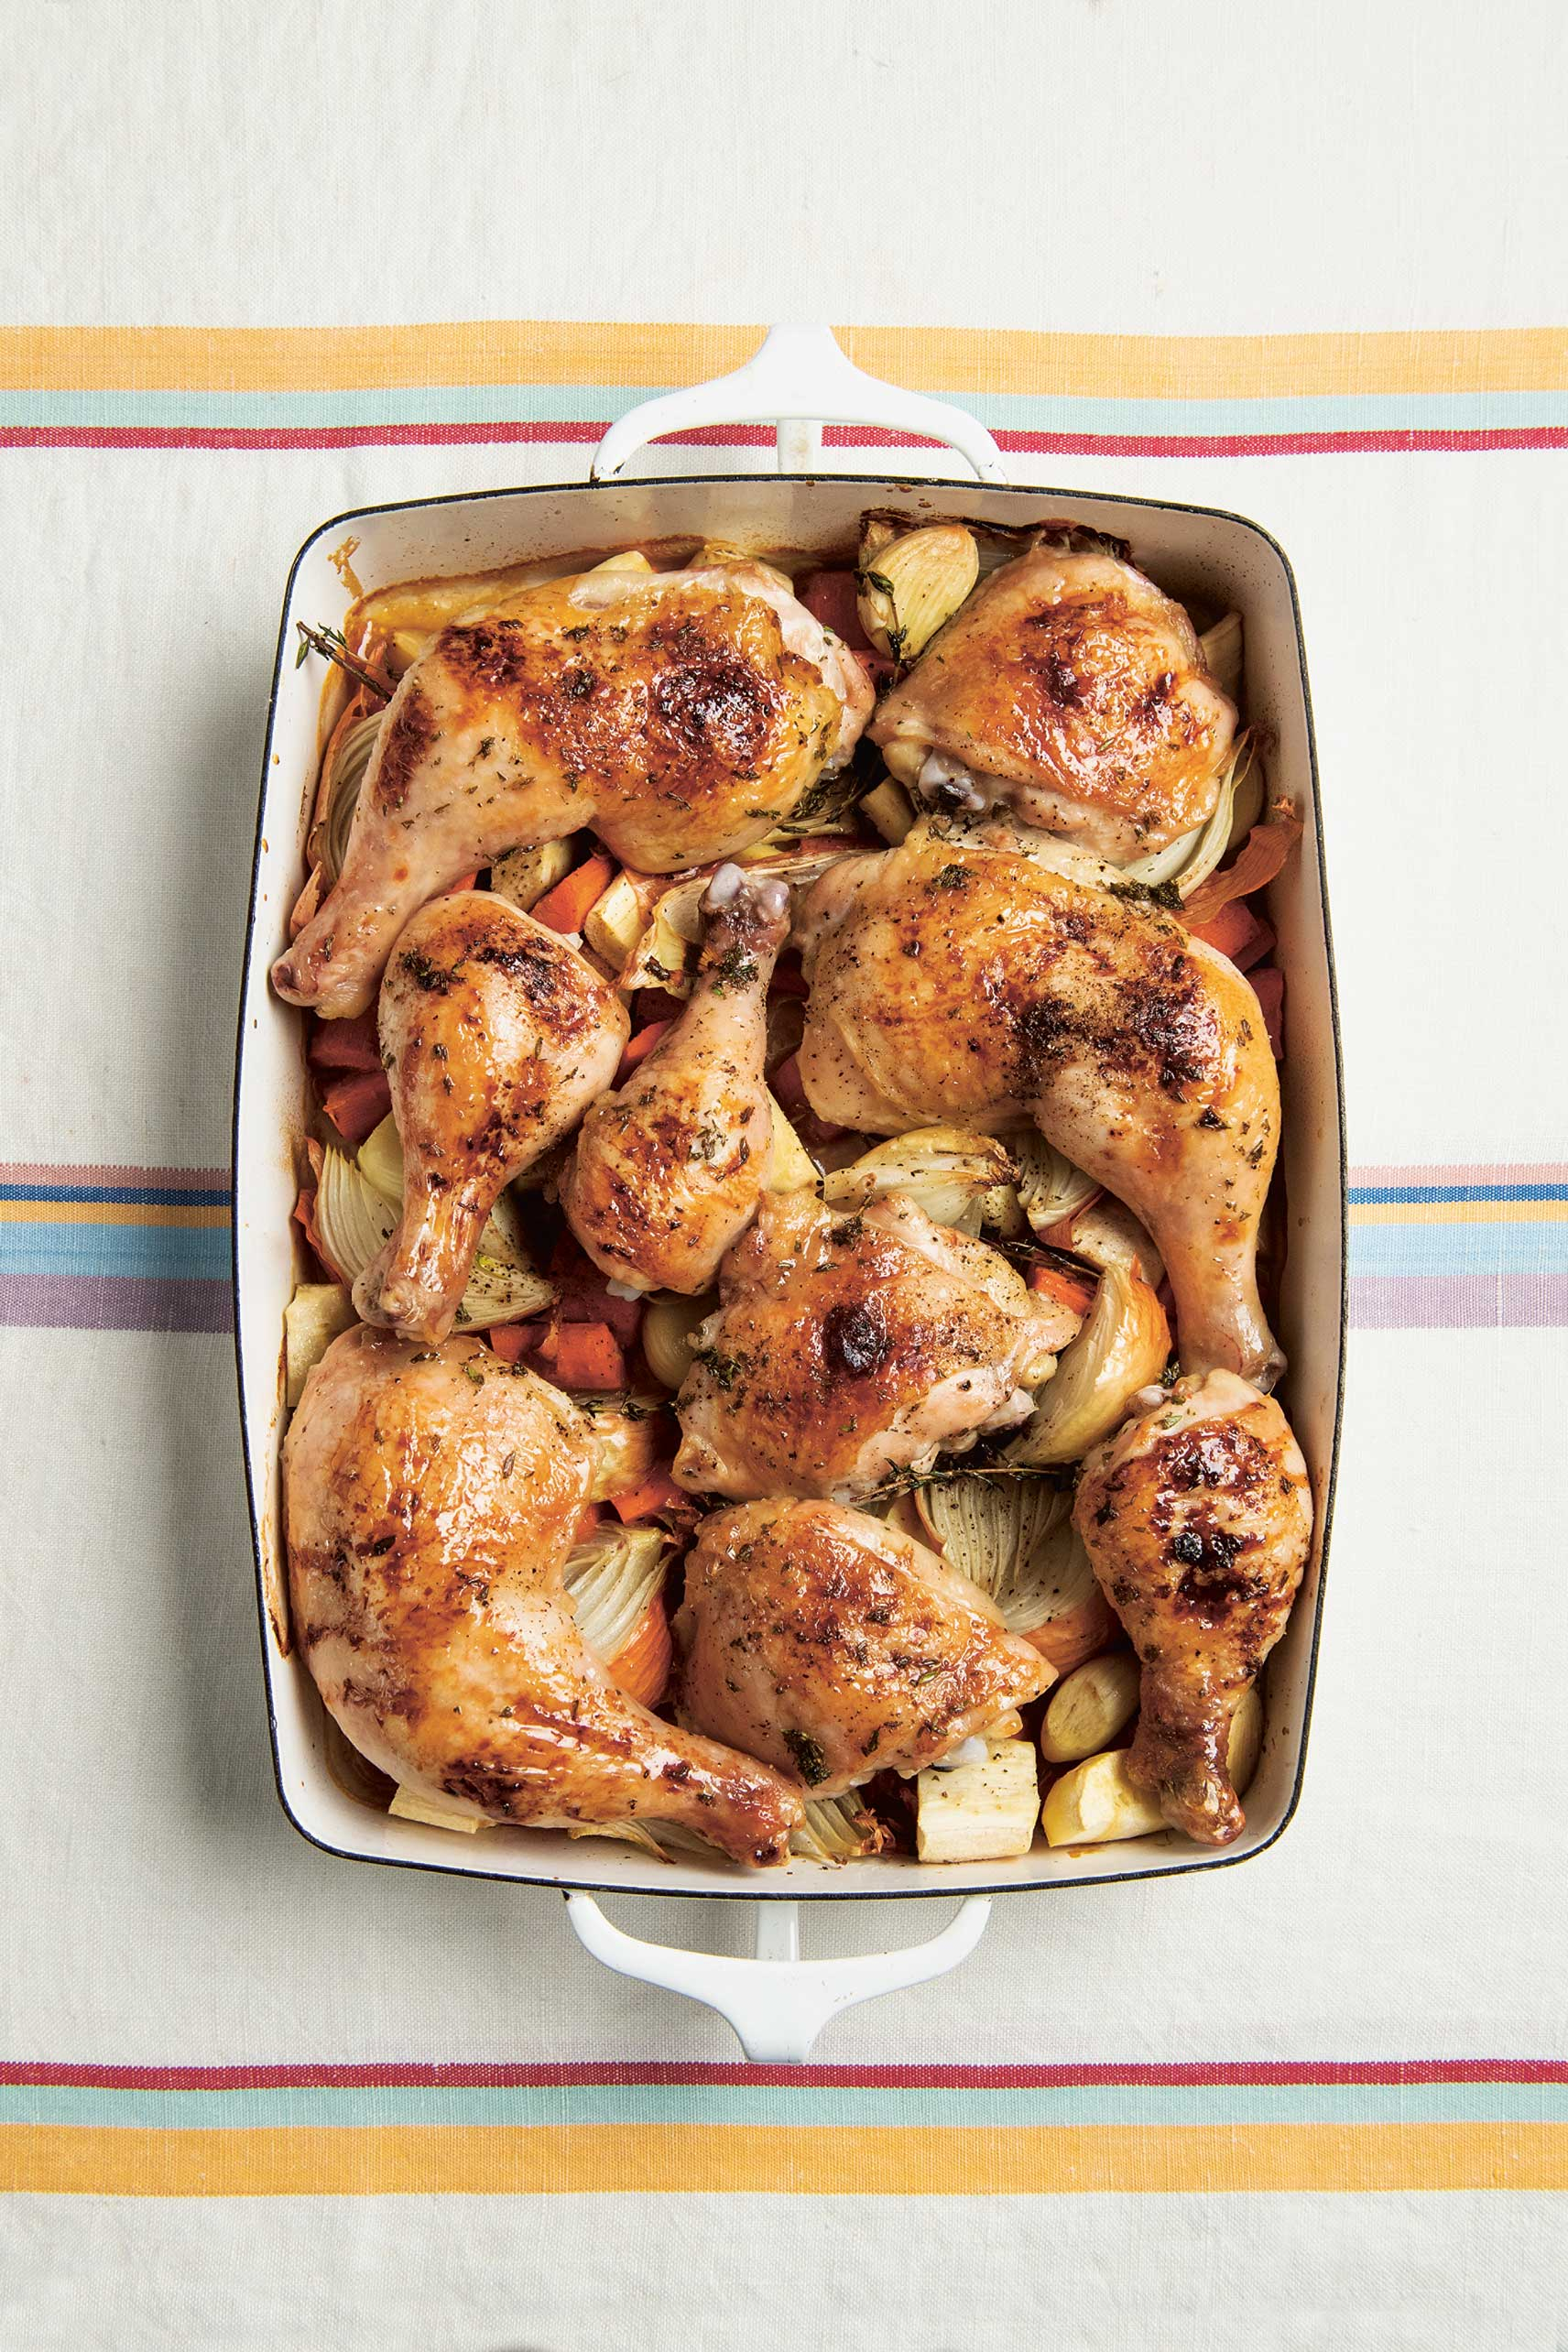 Roast Chicken from The Jewish Cookbook